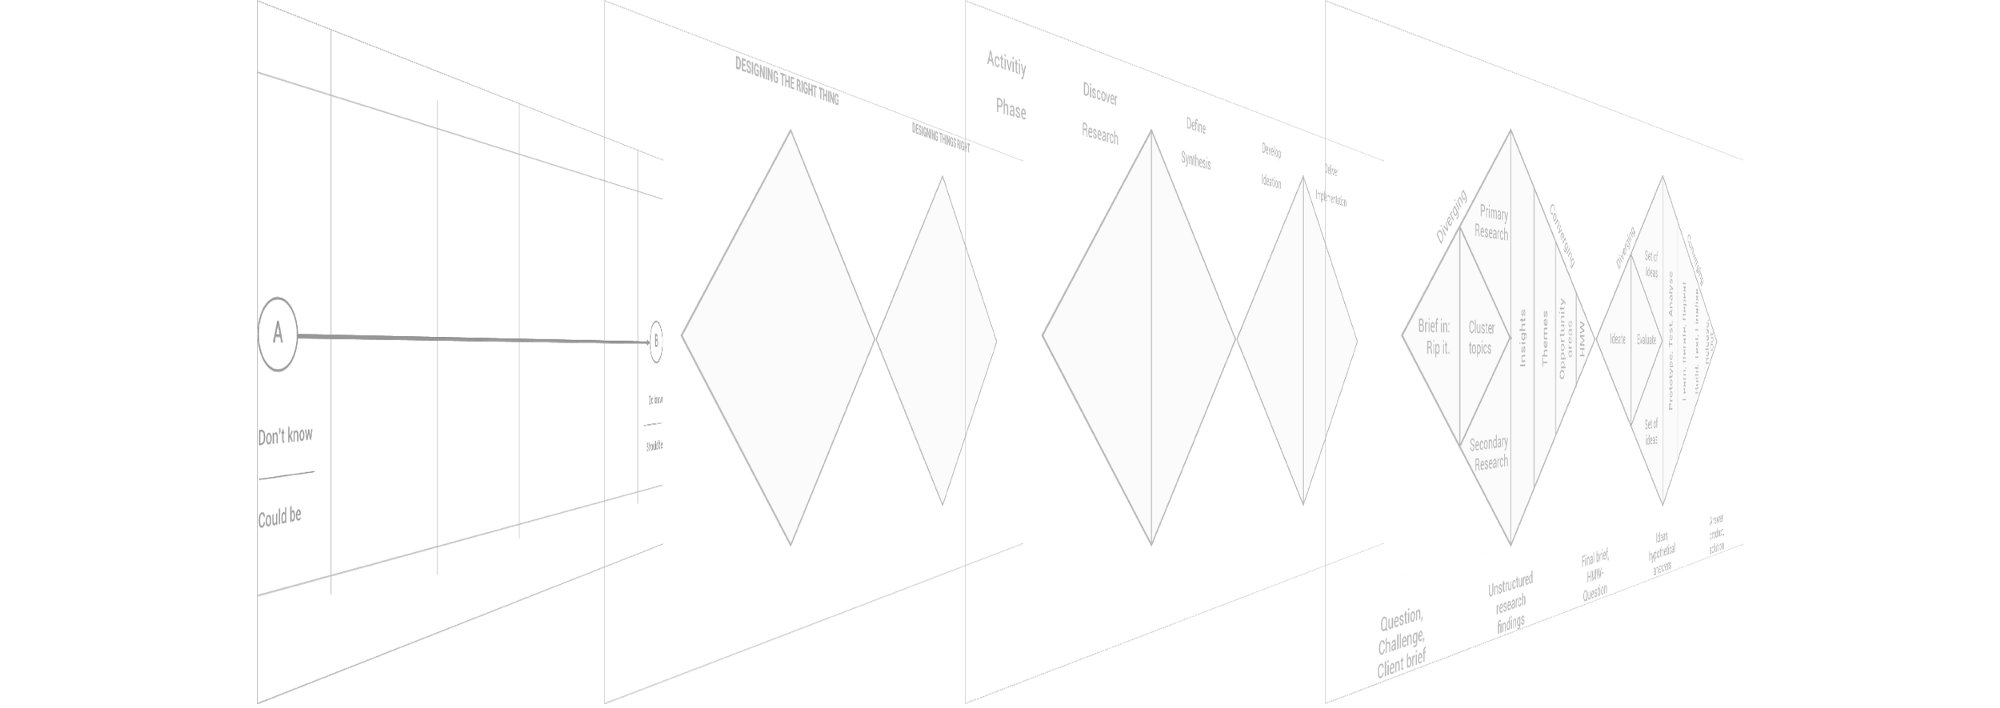 Documenting the process of rethinking and revamping a design framework (link to article)